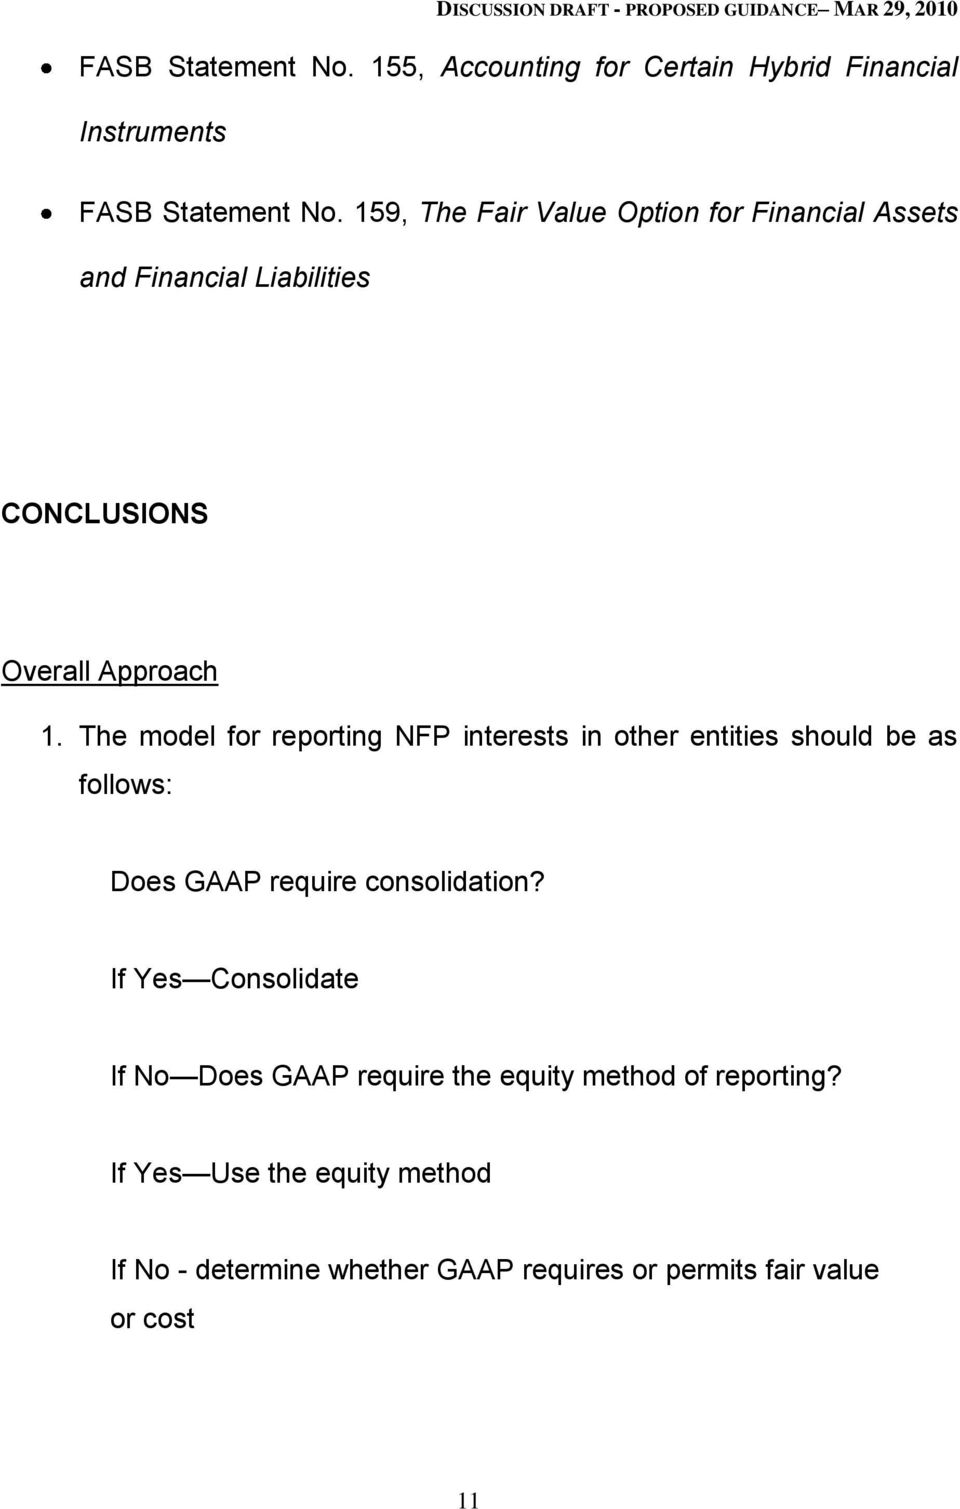 The model for reporting NFP interests in other entities should be as follows: Does GAAP require consolidation?